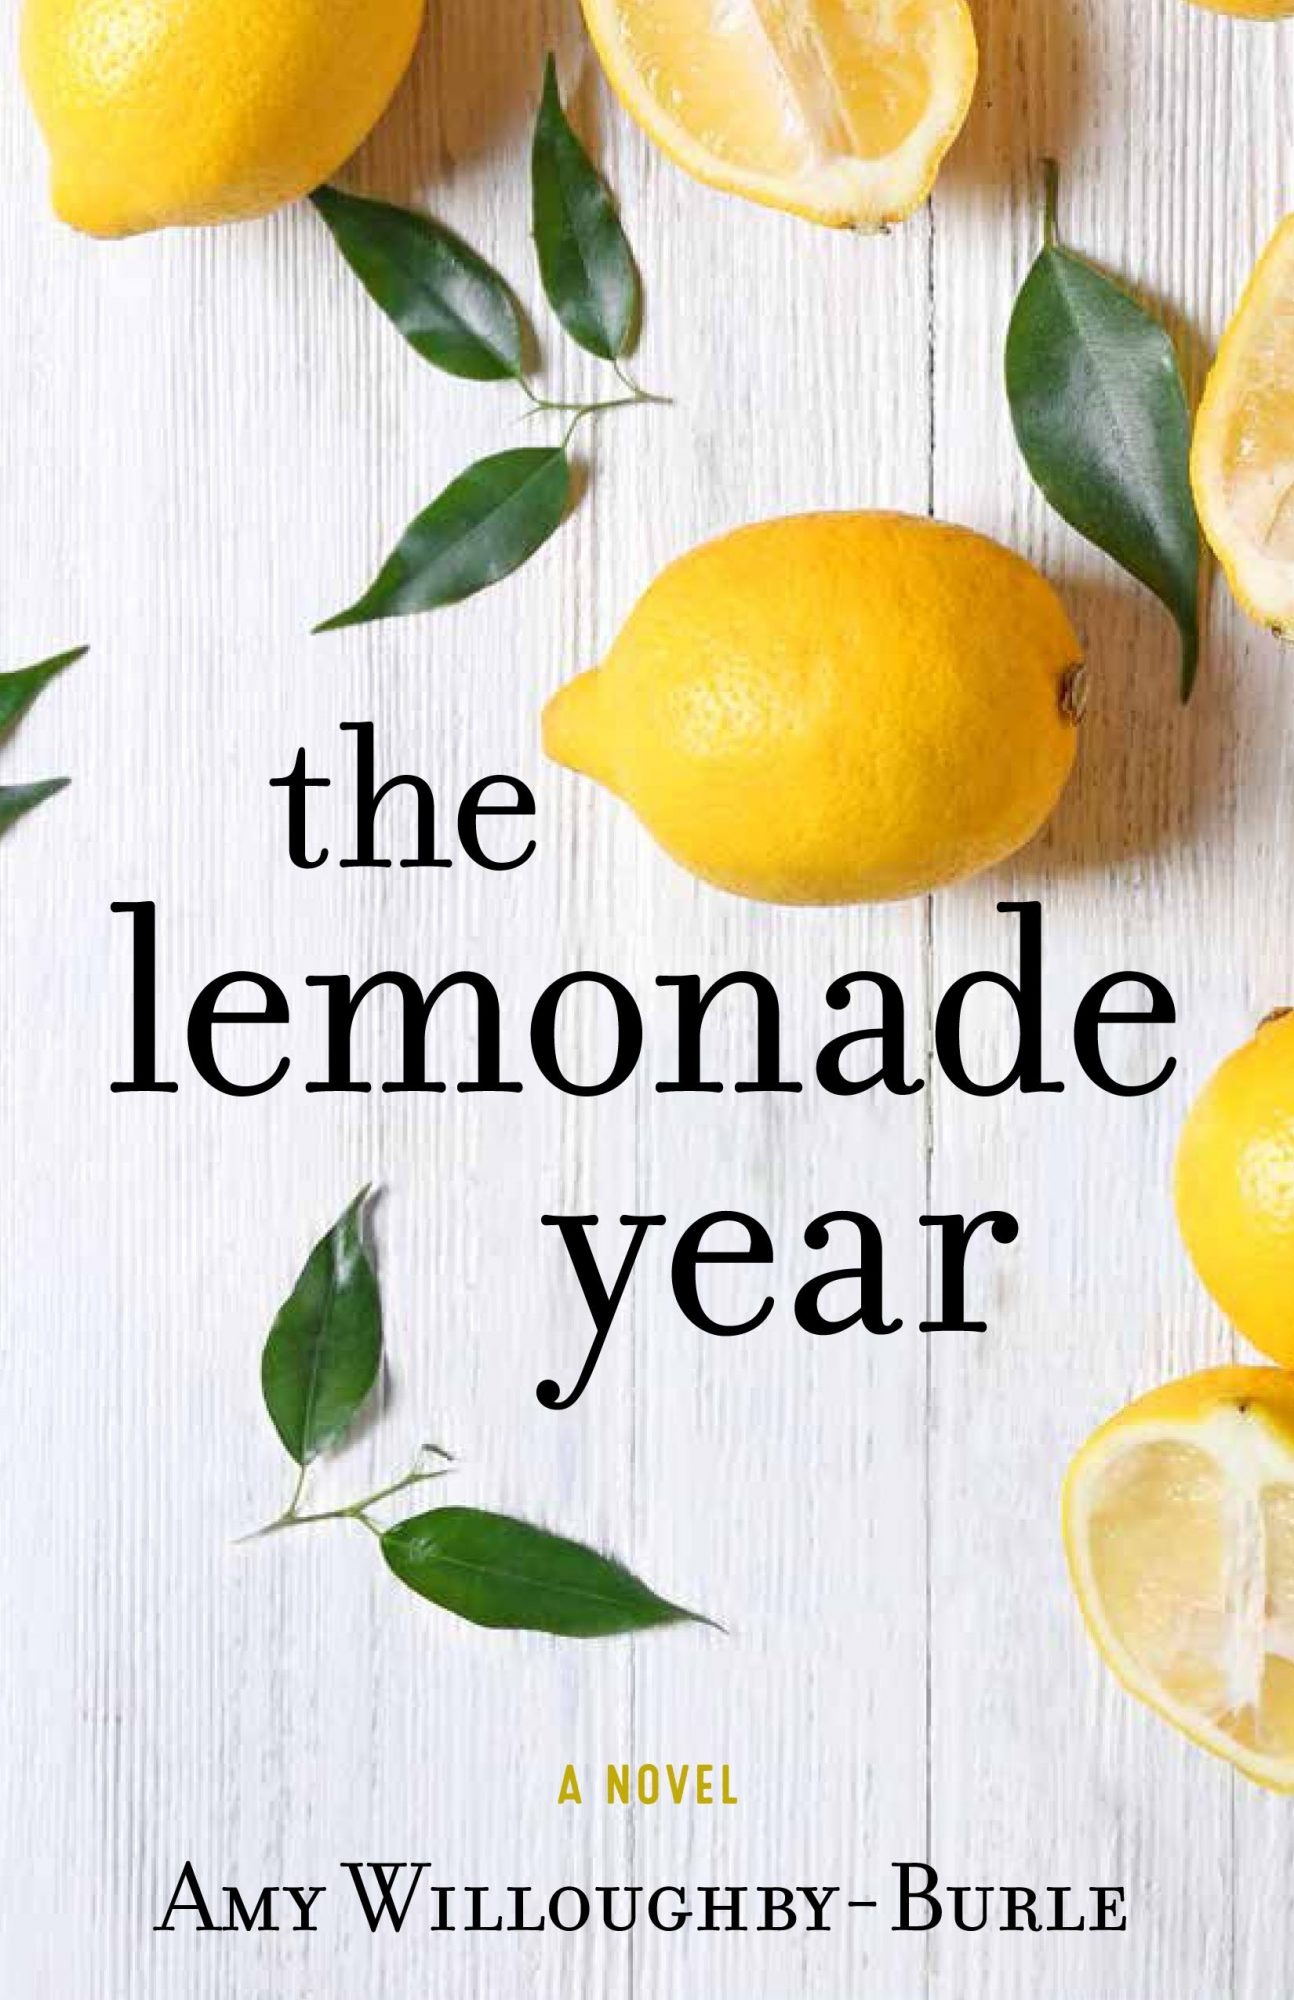 The Lemonade Year by Amy Willoughby-Burle